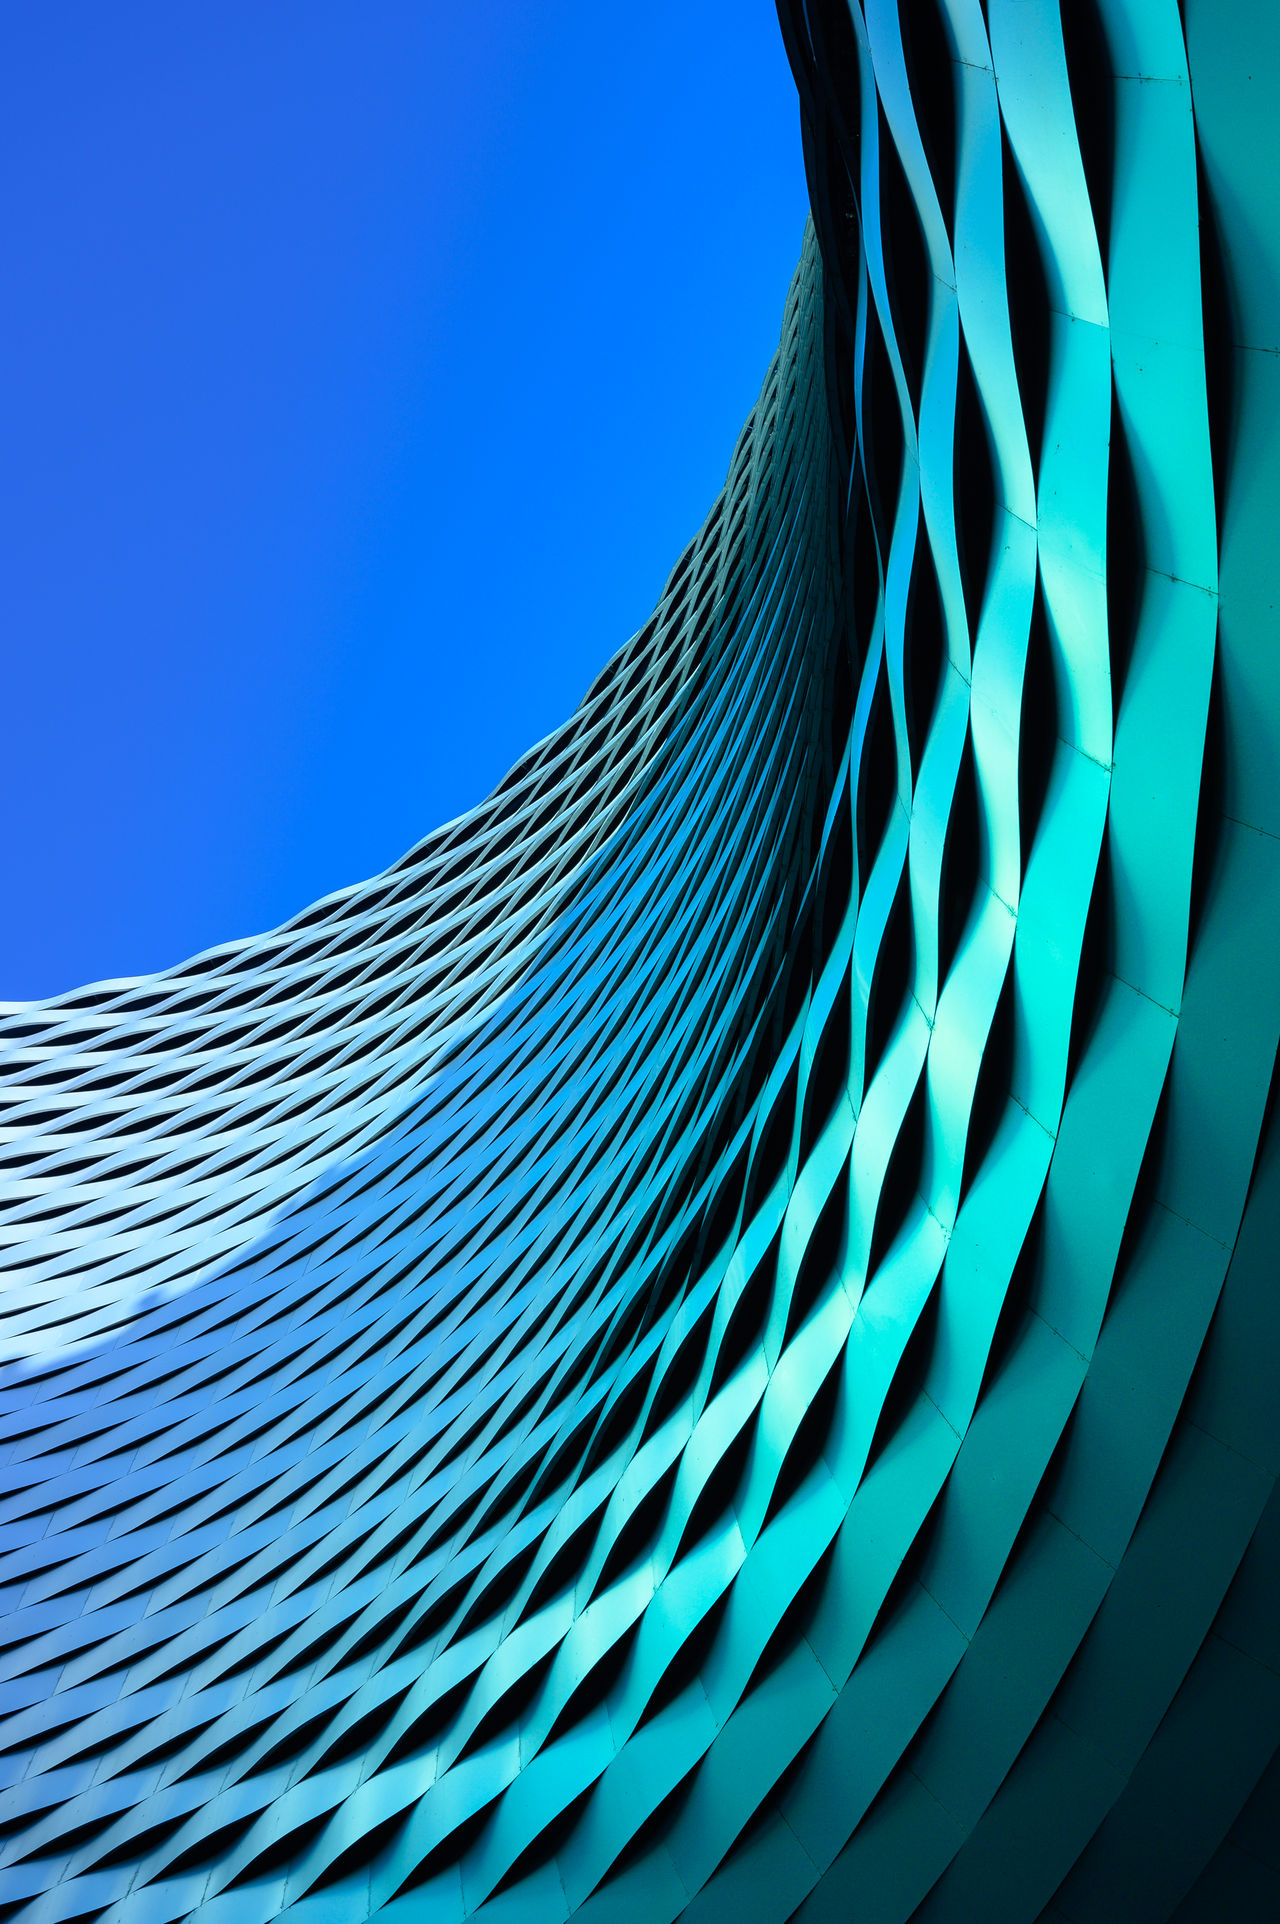 blue, sky, pattern, clear sky, low angle view